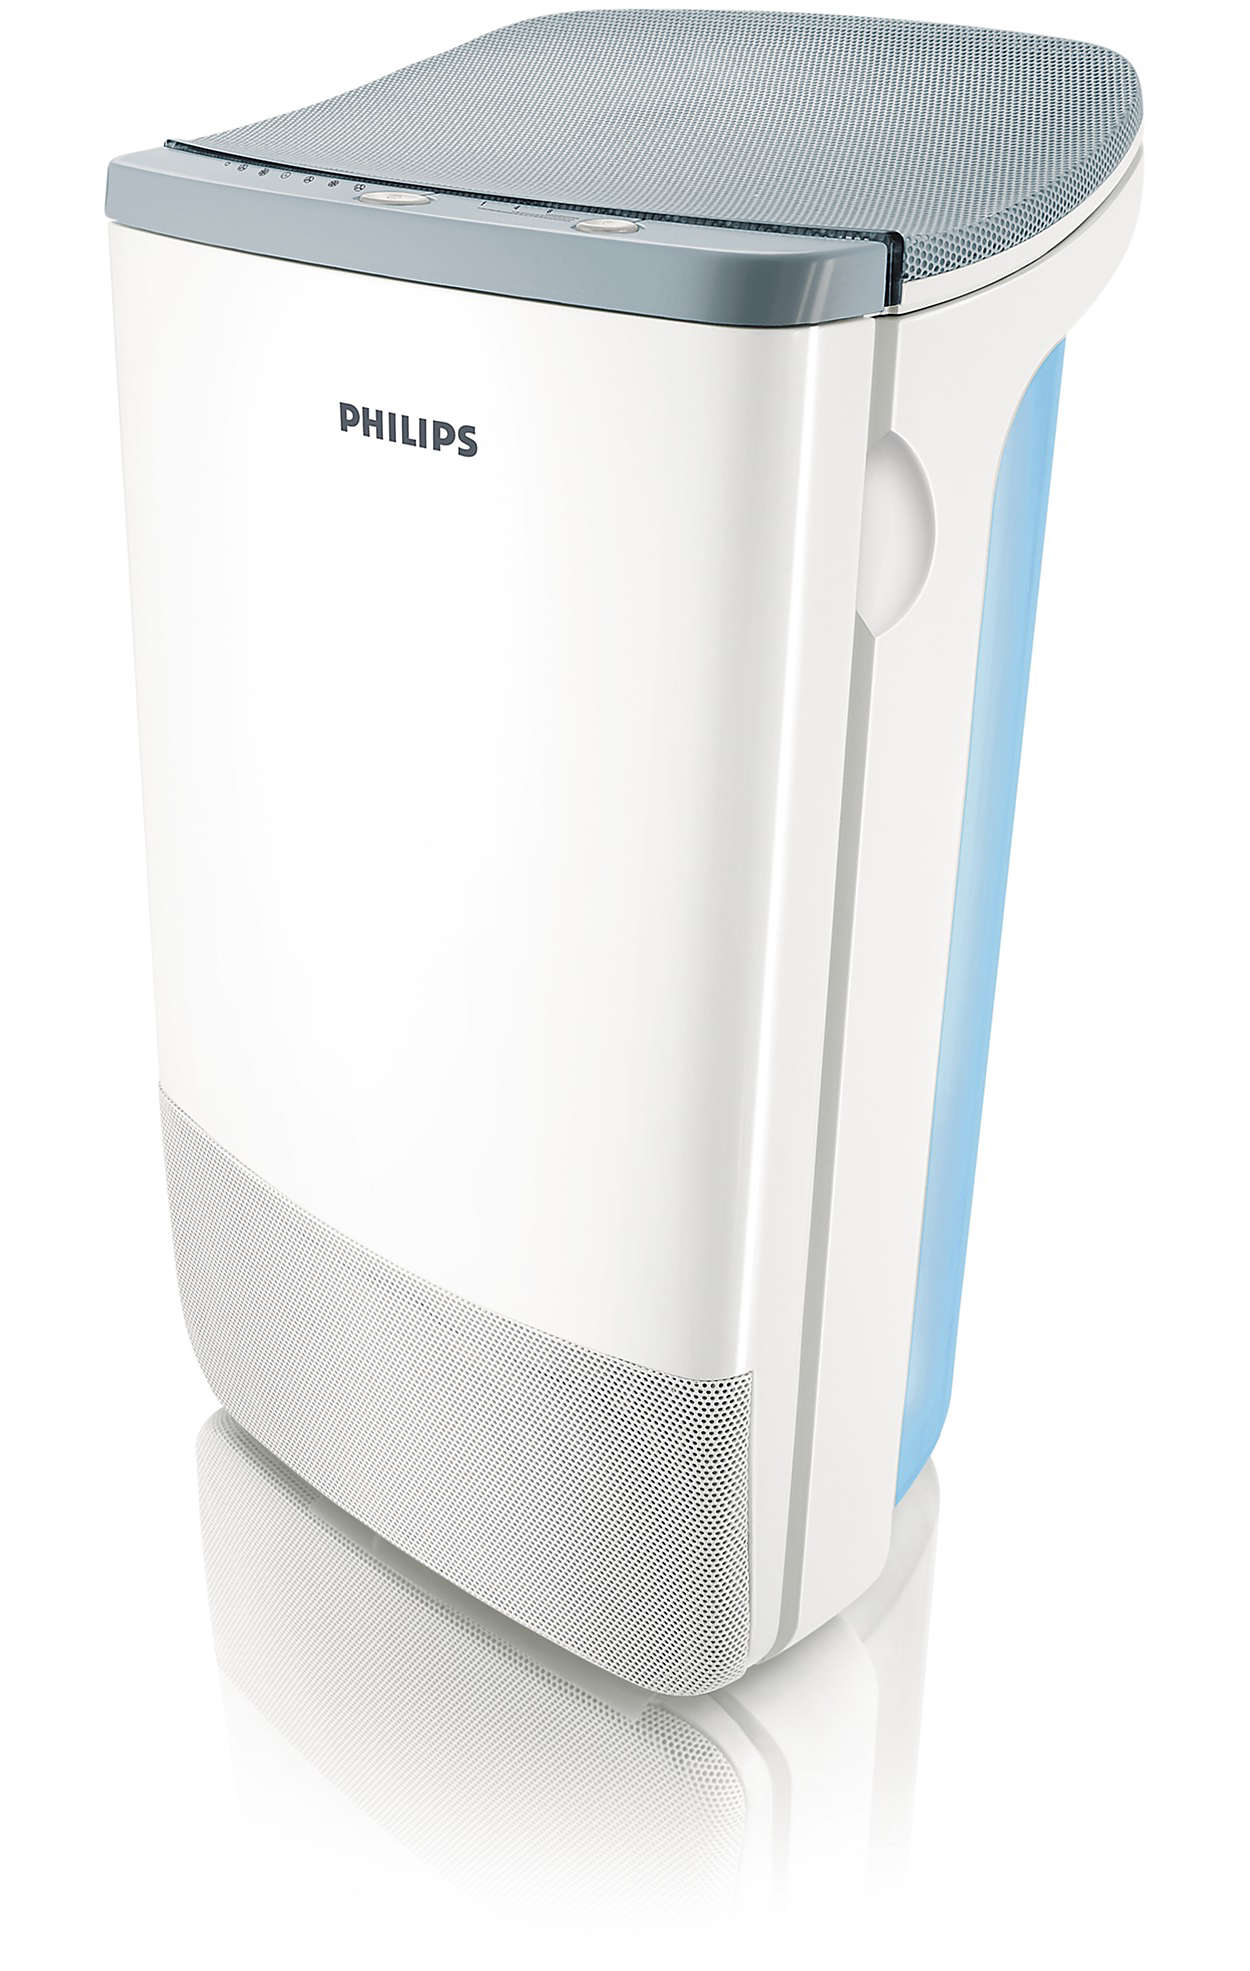 purificateur d 39 air pour chambre ac4054 00 philips. Black Bedroom Furniture Sets. Home Design Ideas